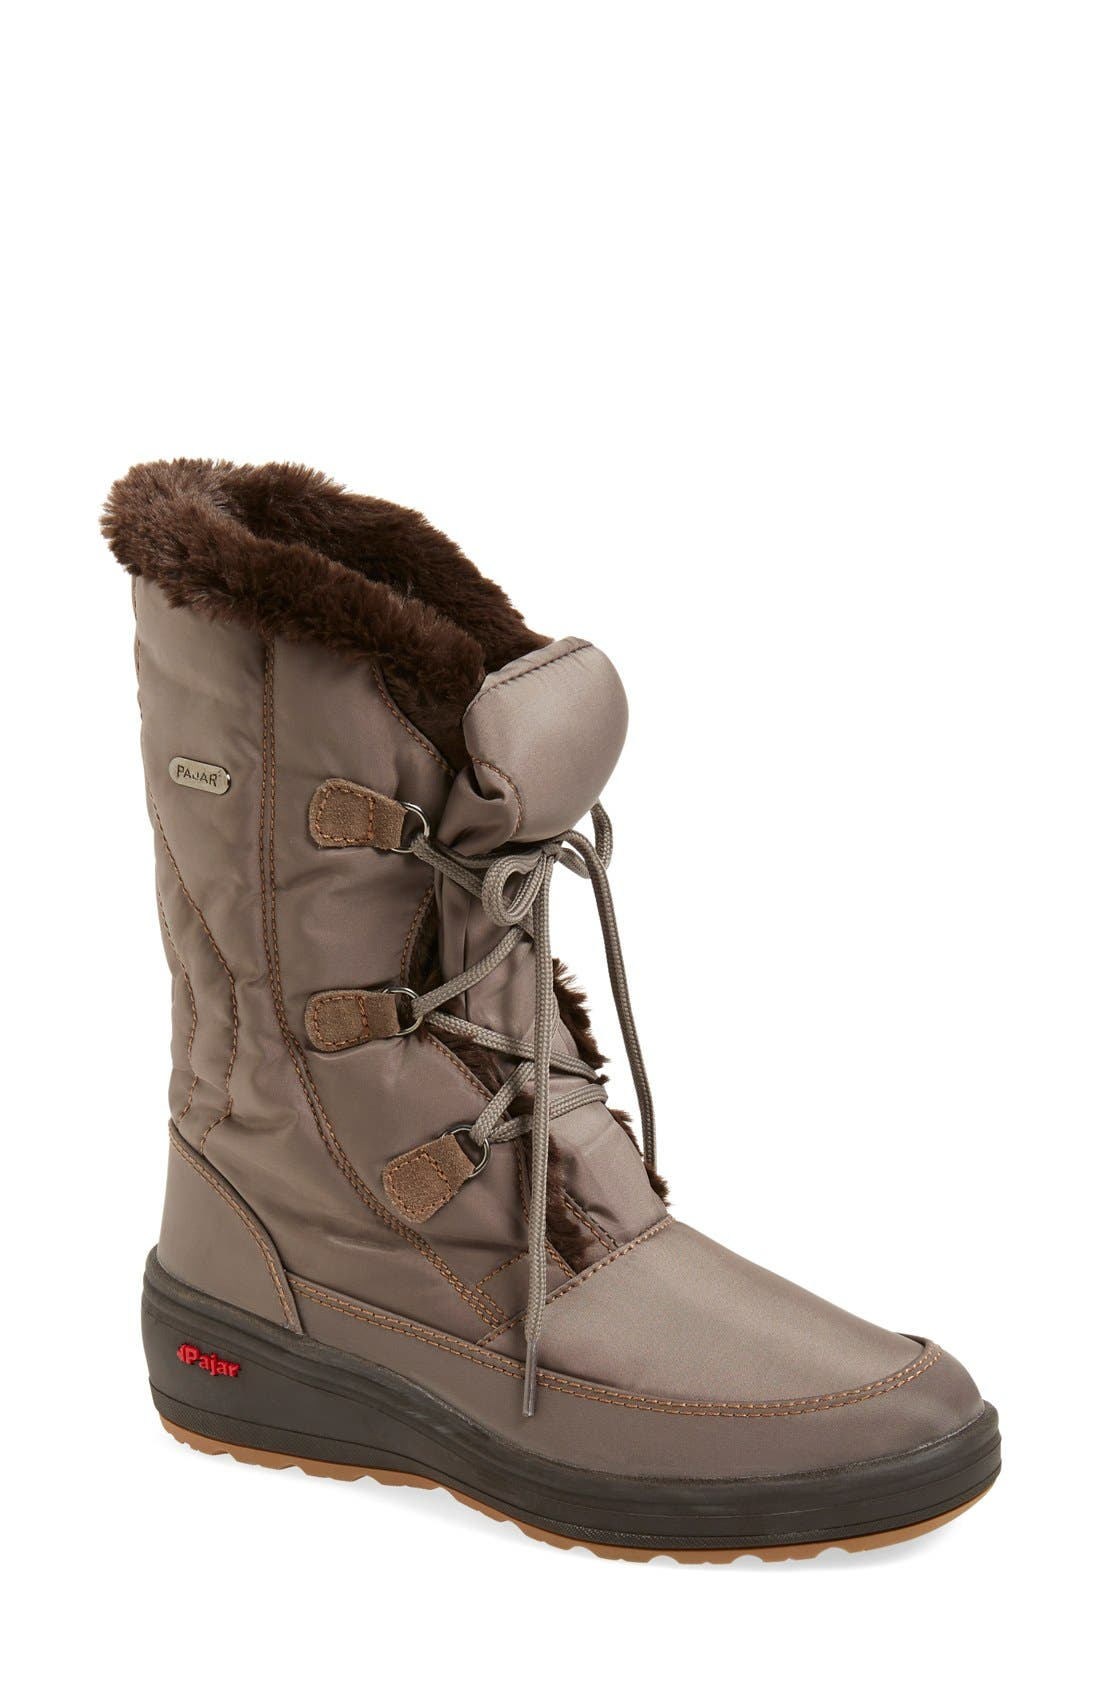 Pajar 'Marcie' Waterproof Snow Boot with Faux Fur Collar (Women)